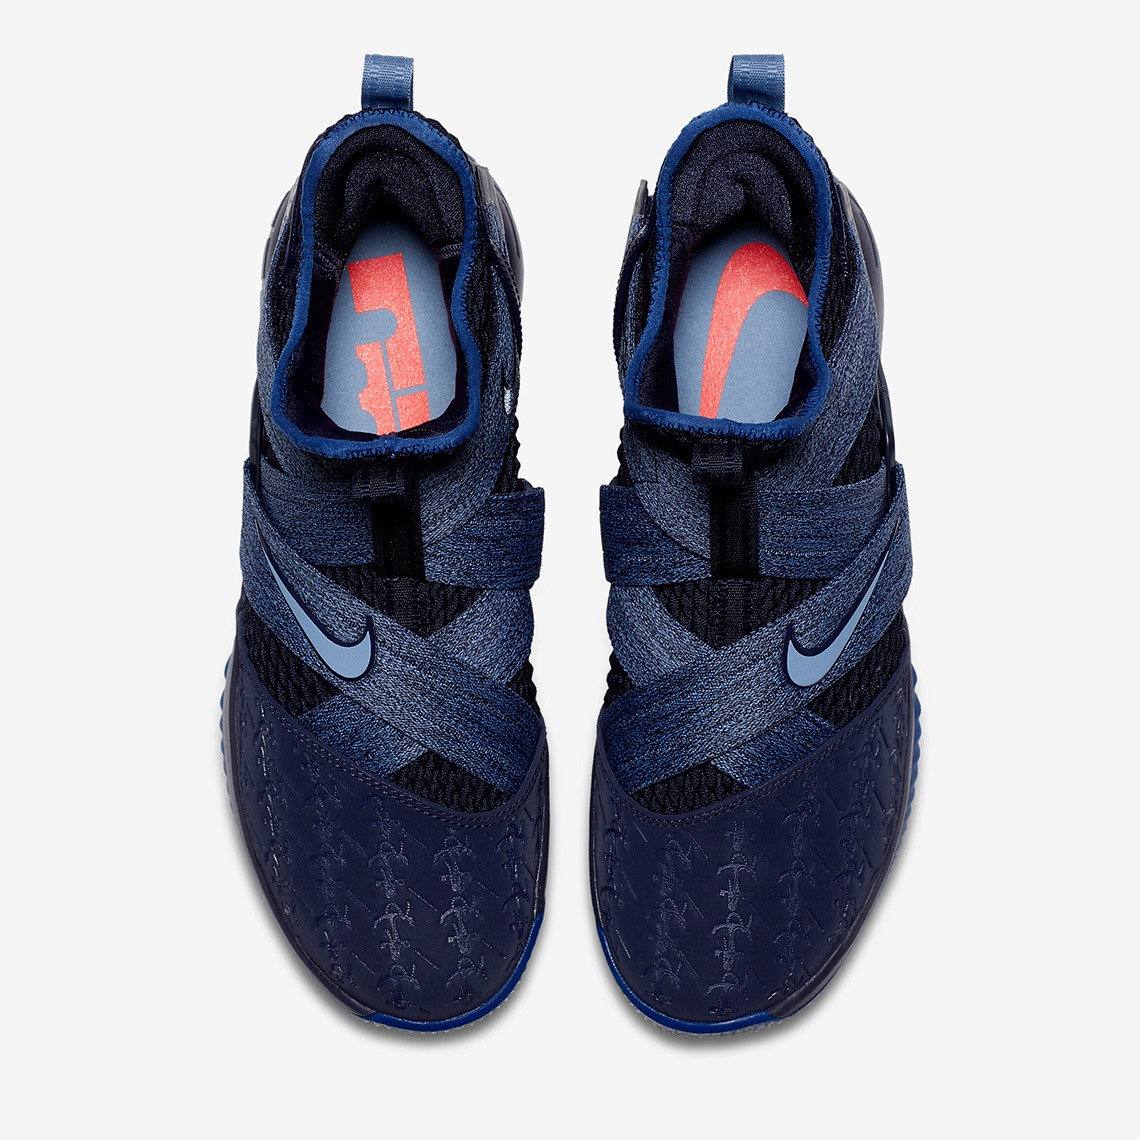 """sports shoes e2e89 91619 Nike LeBron Soldier 12 """"Anchor"""" Is Available"""